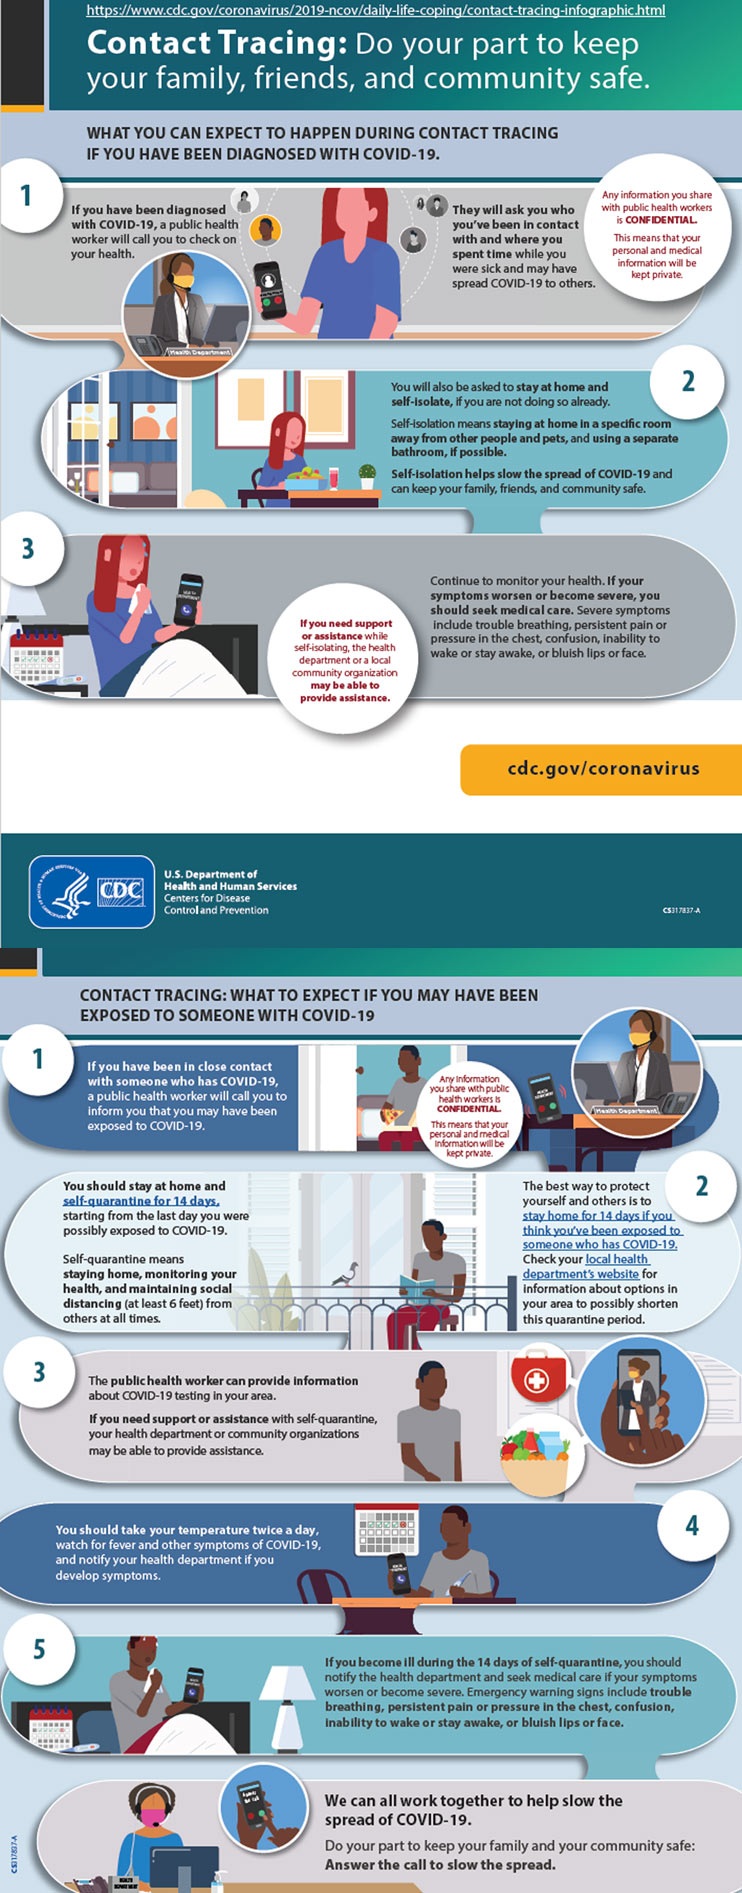 Contact Tracing Steps Infographic Cdc